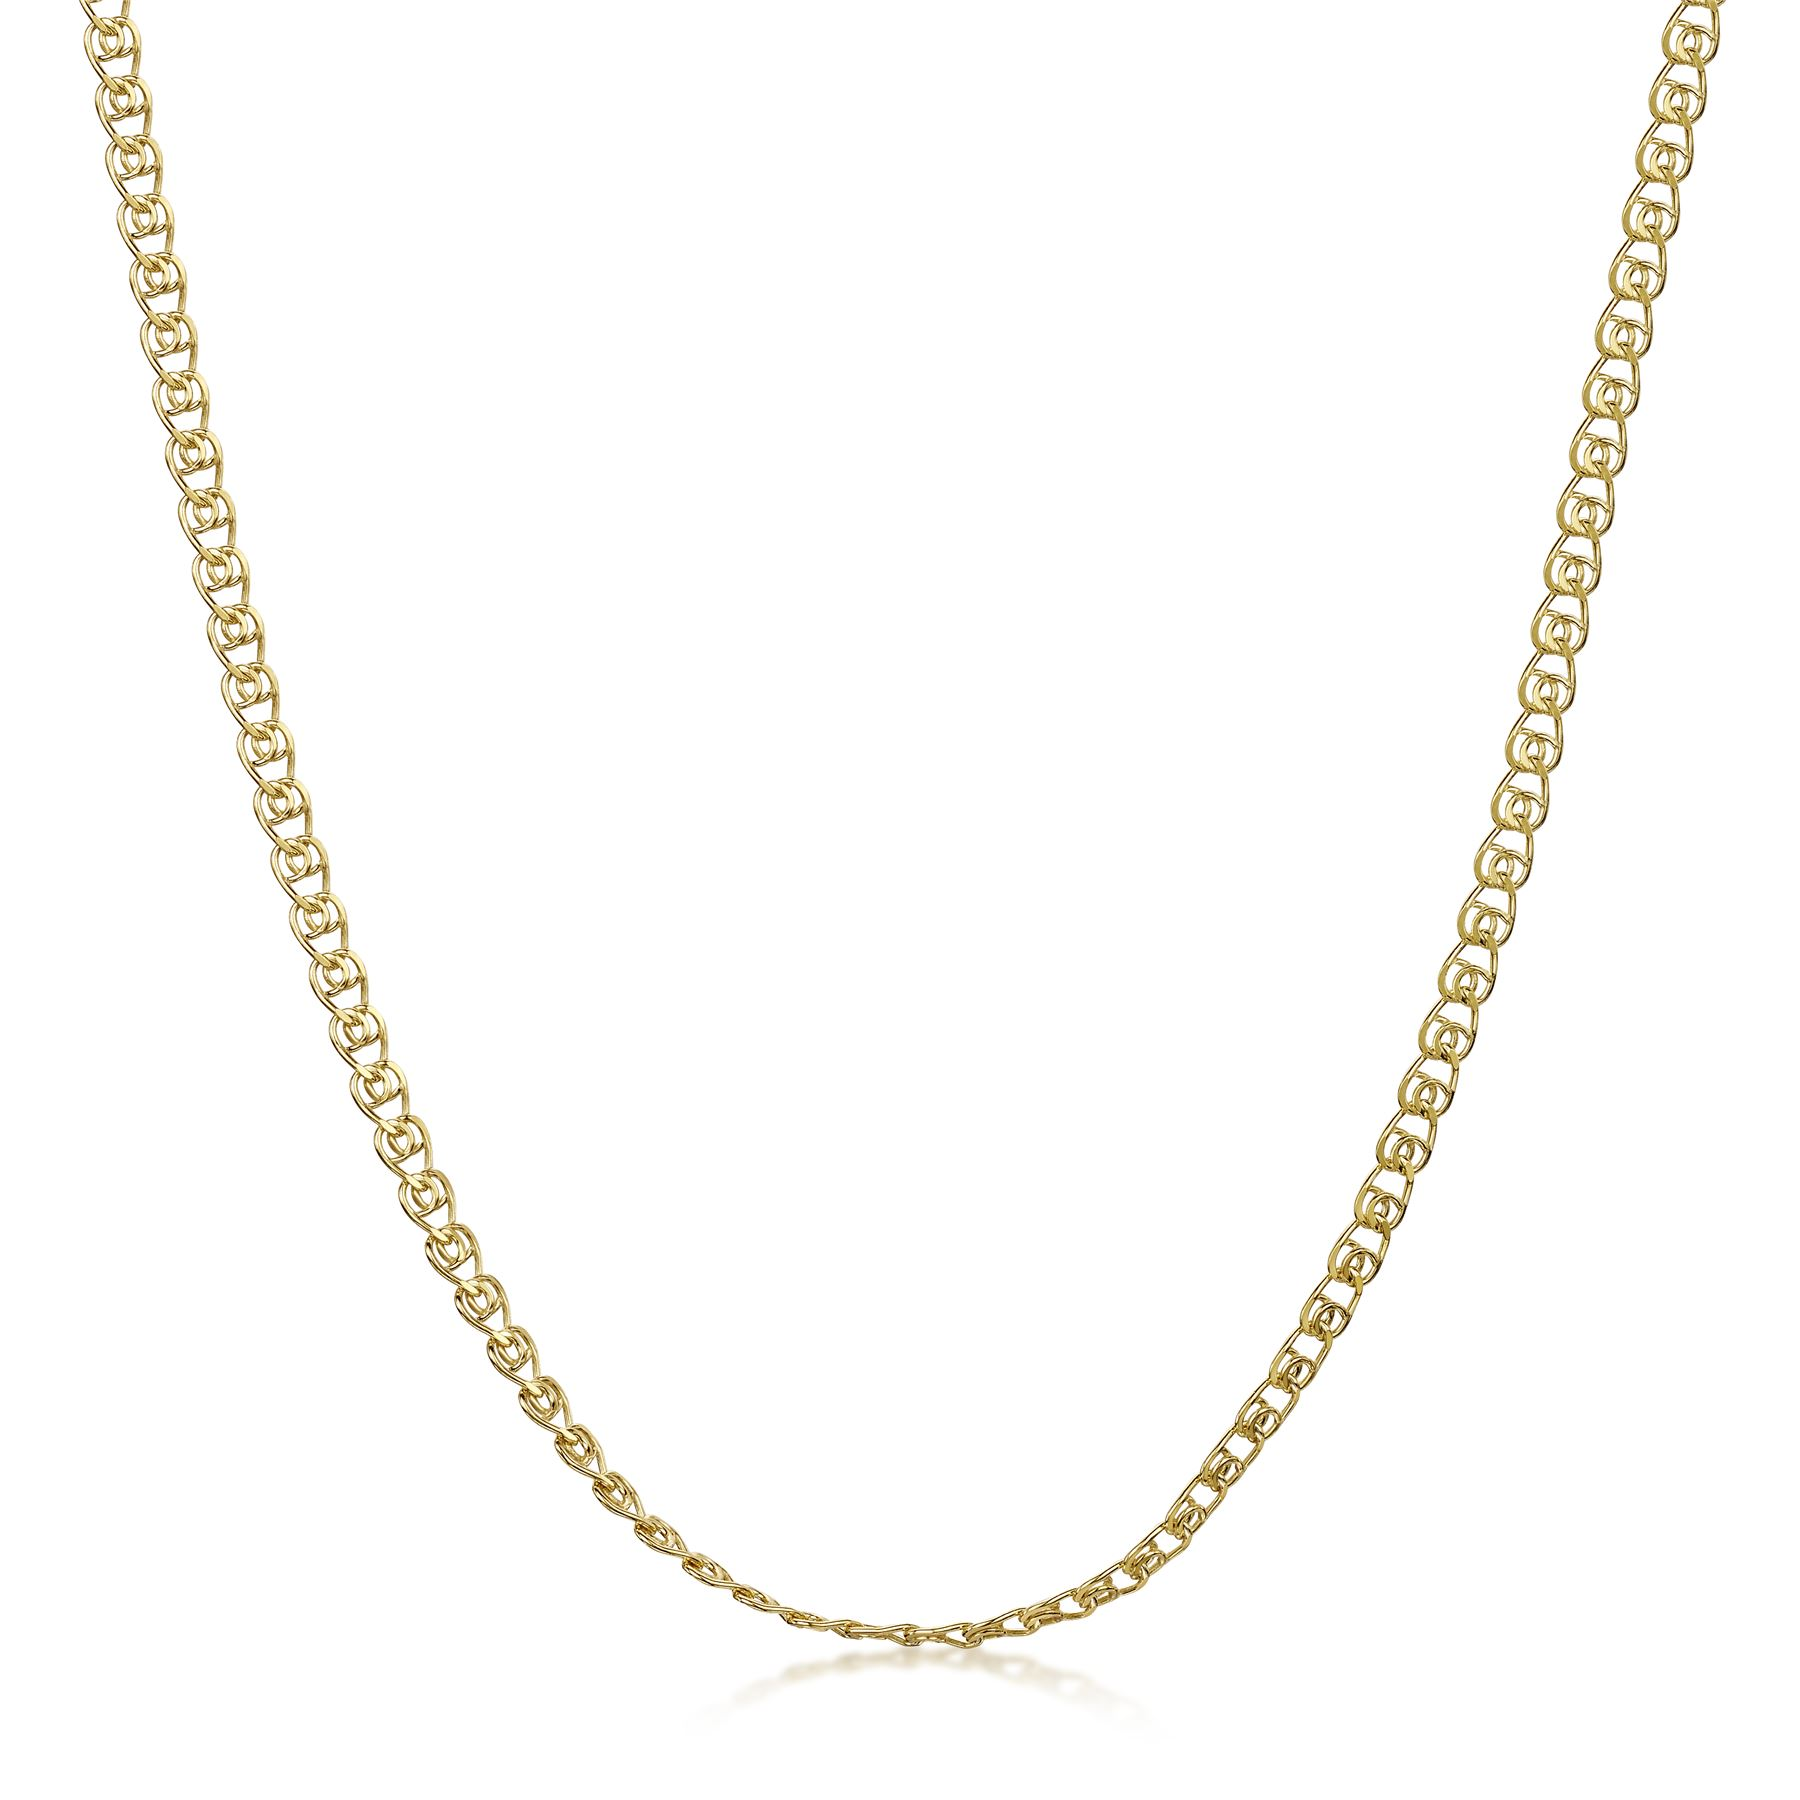 Amberta-Genuine-Gold-Plated-on-Real-925-Sterling-Silver-Necklace-Chain-Italy miniatura 44